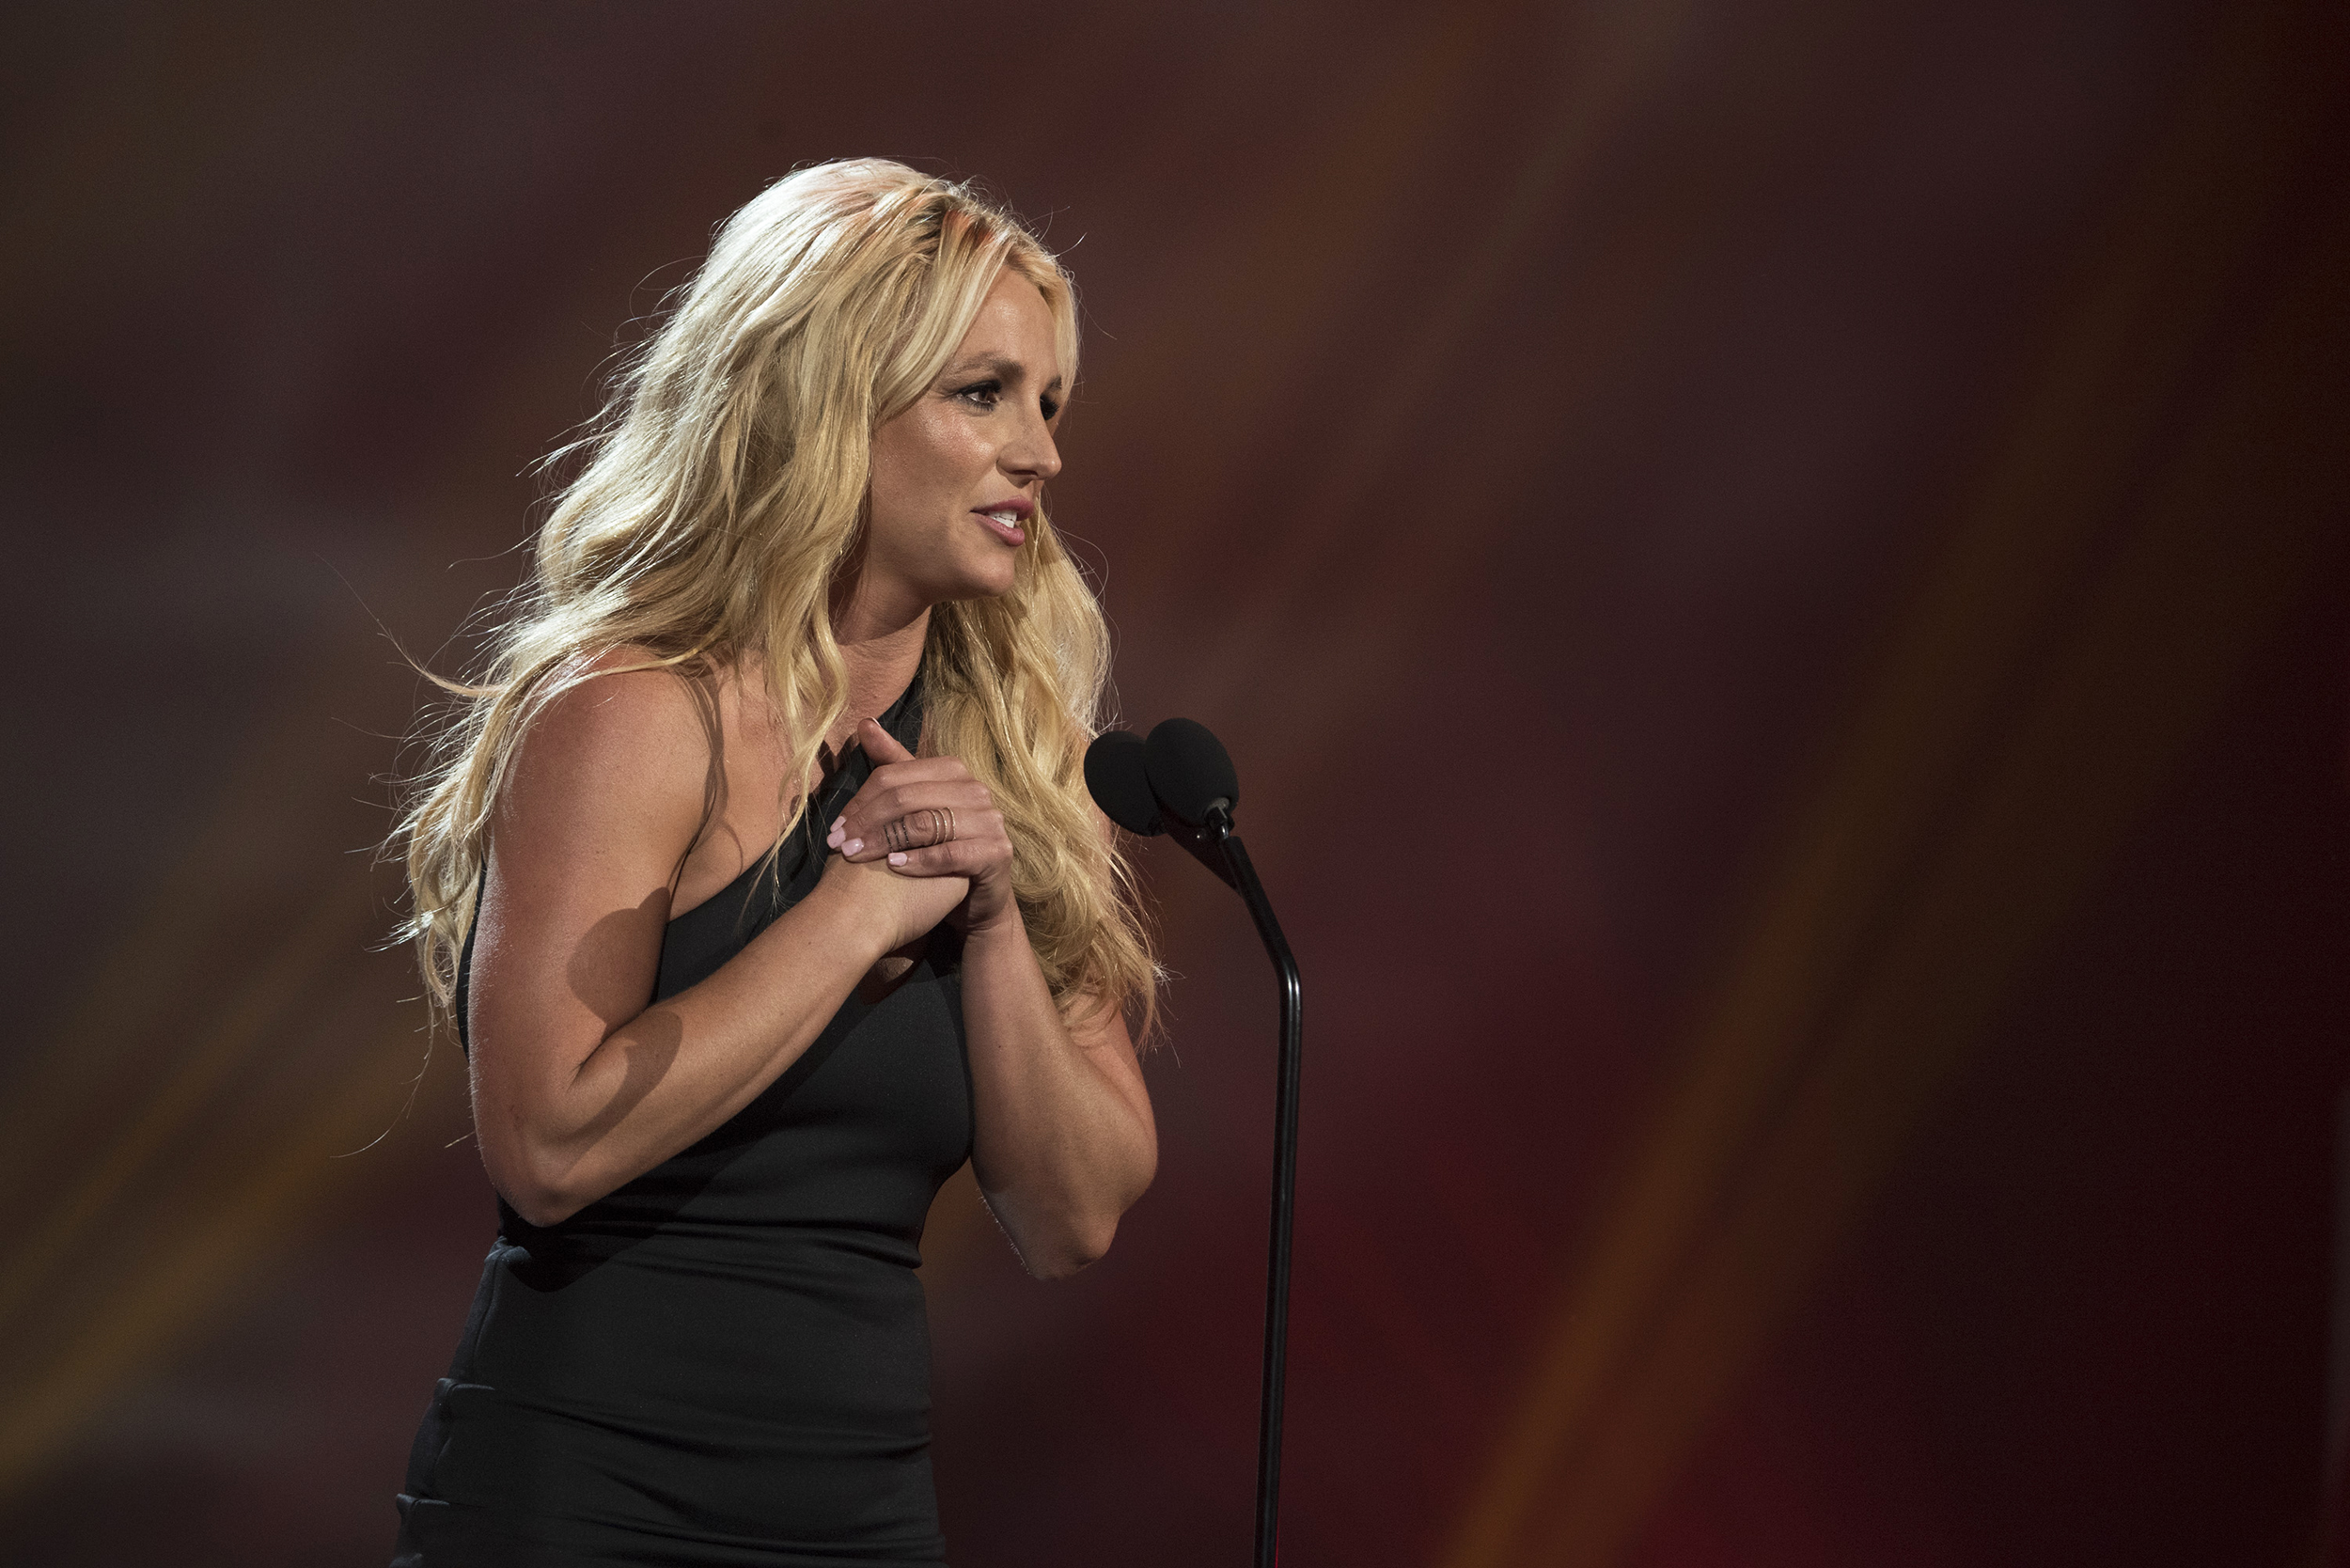 Britney Spears thanks #FreeBritney movement for 'freeing' her from conservatorship